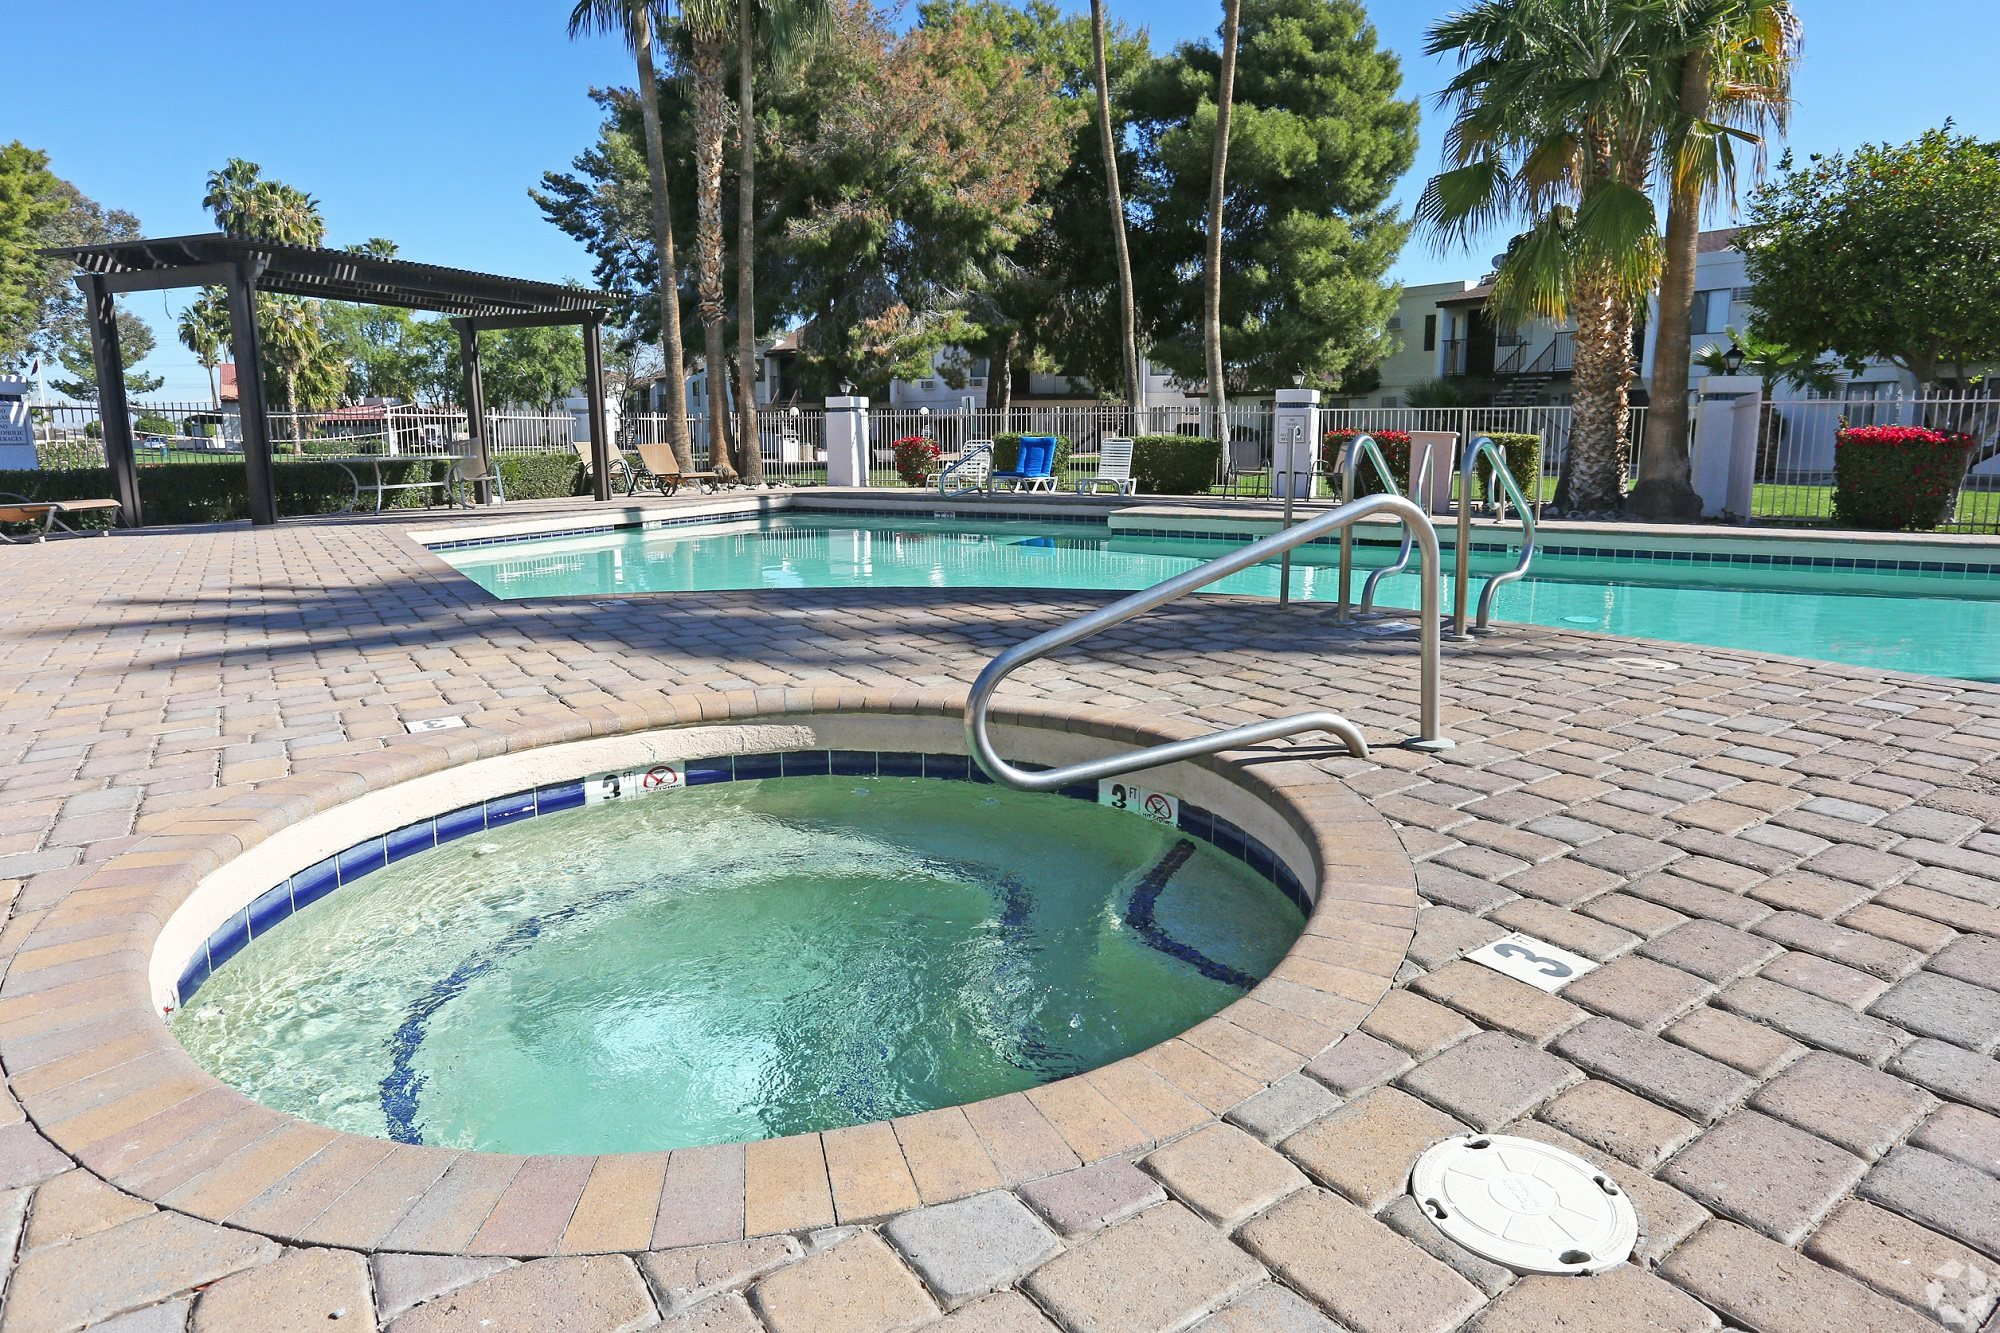 Spa & pool at Desert Gardens Apartments in Tucson, AZ